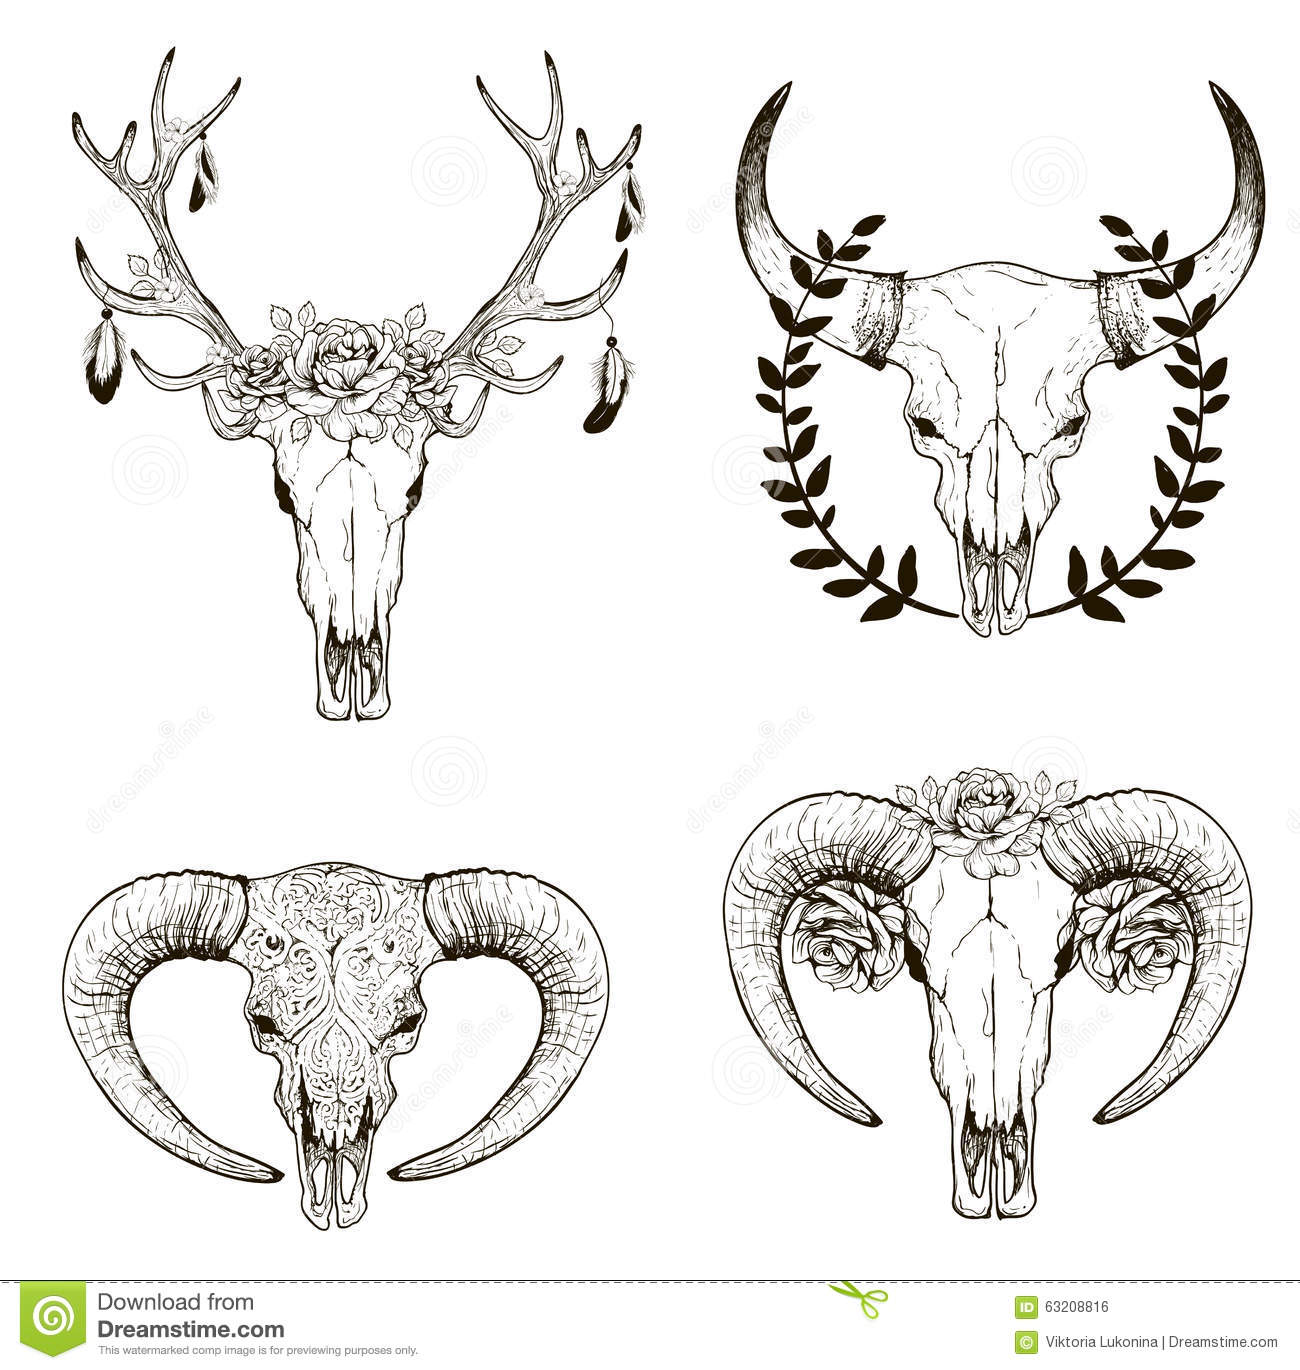 Spur Art Design Your Line : Cow skull collection stock vector illustration of design